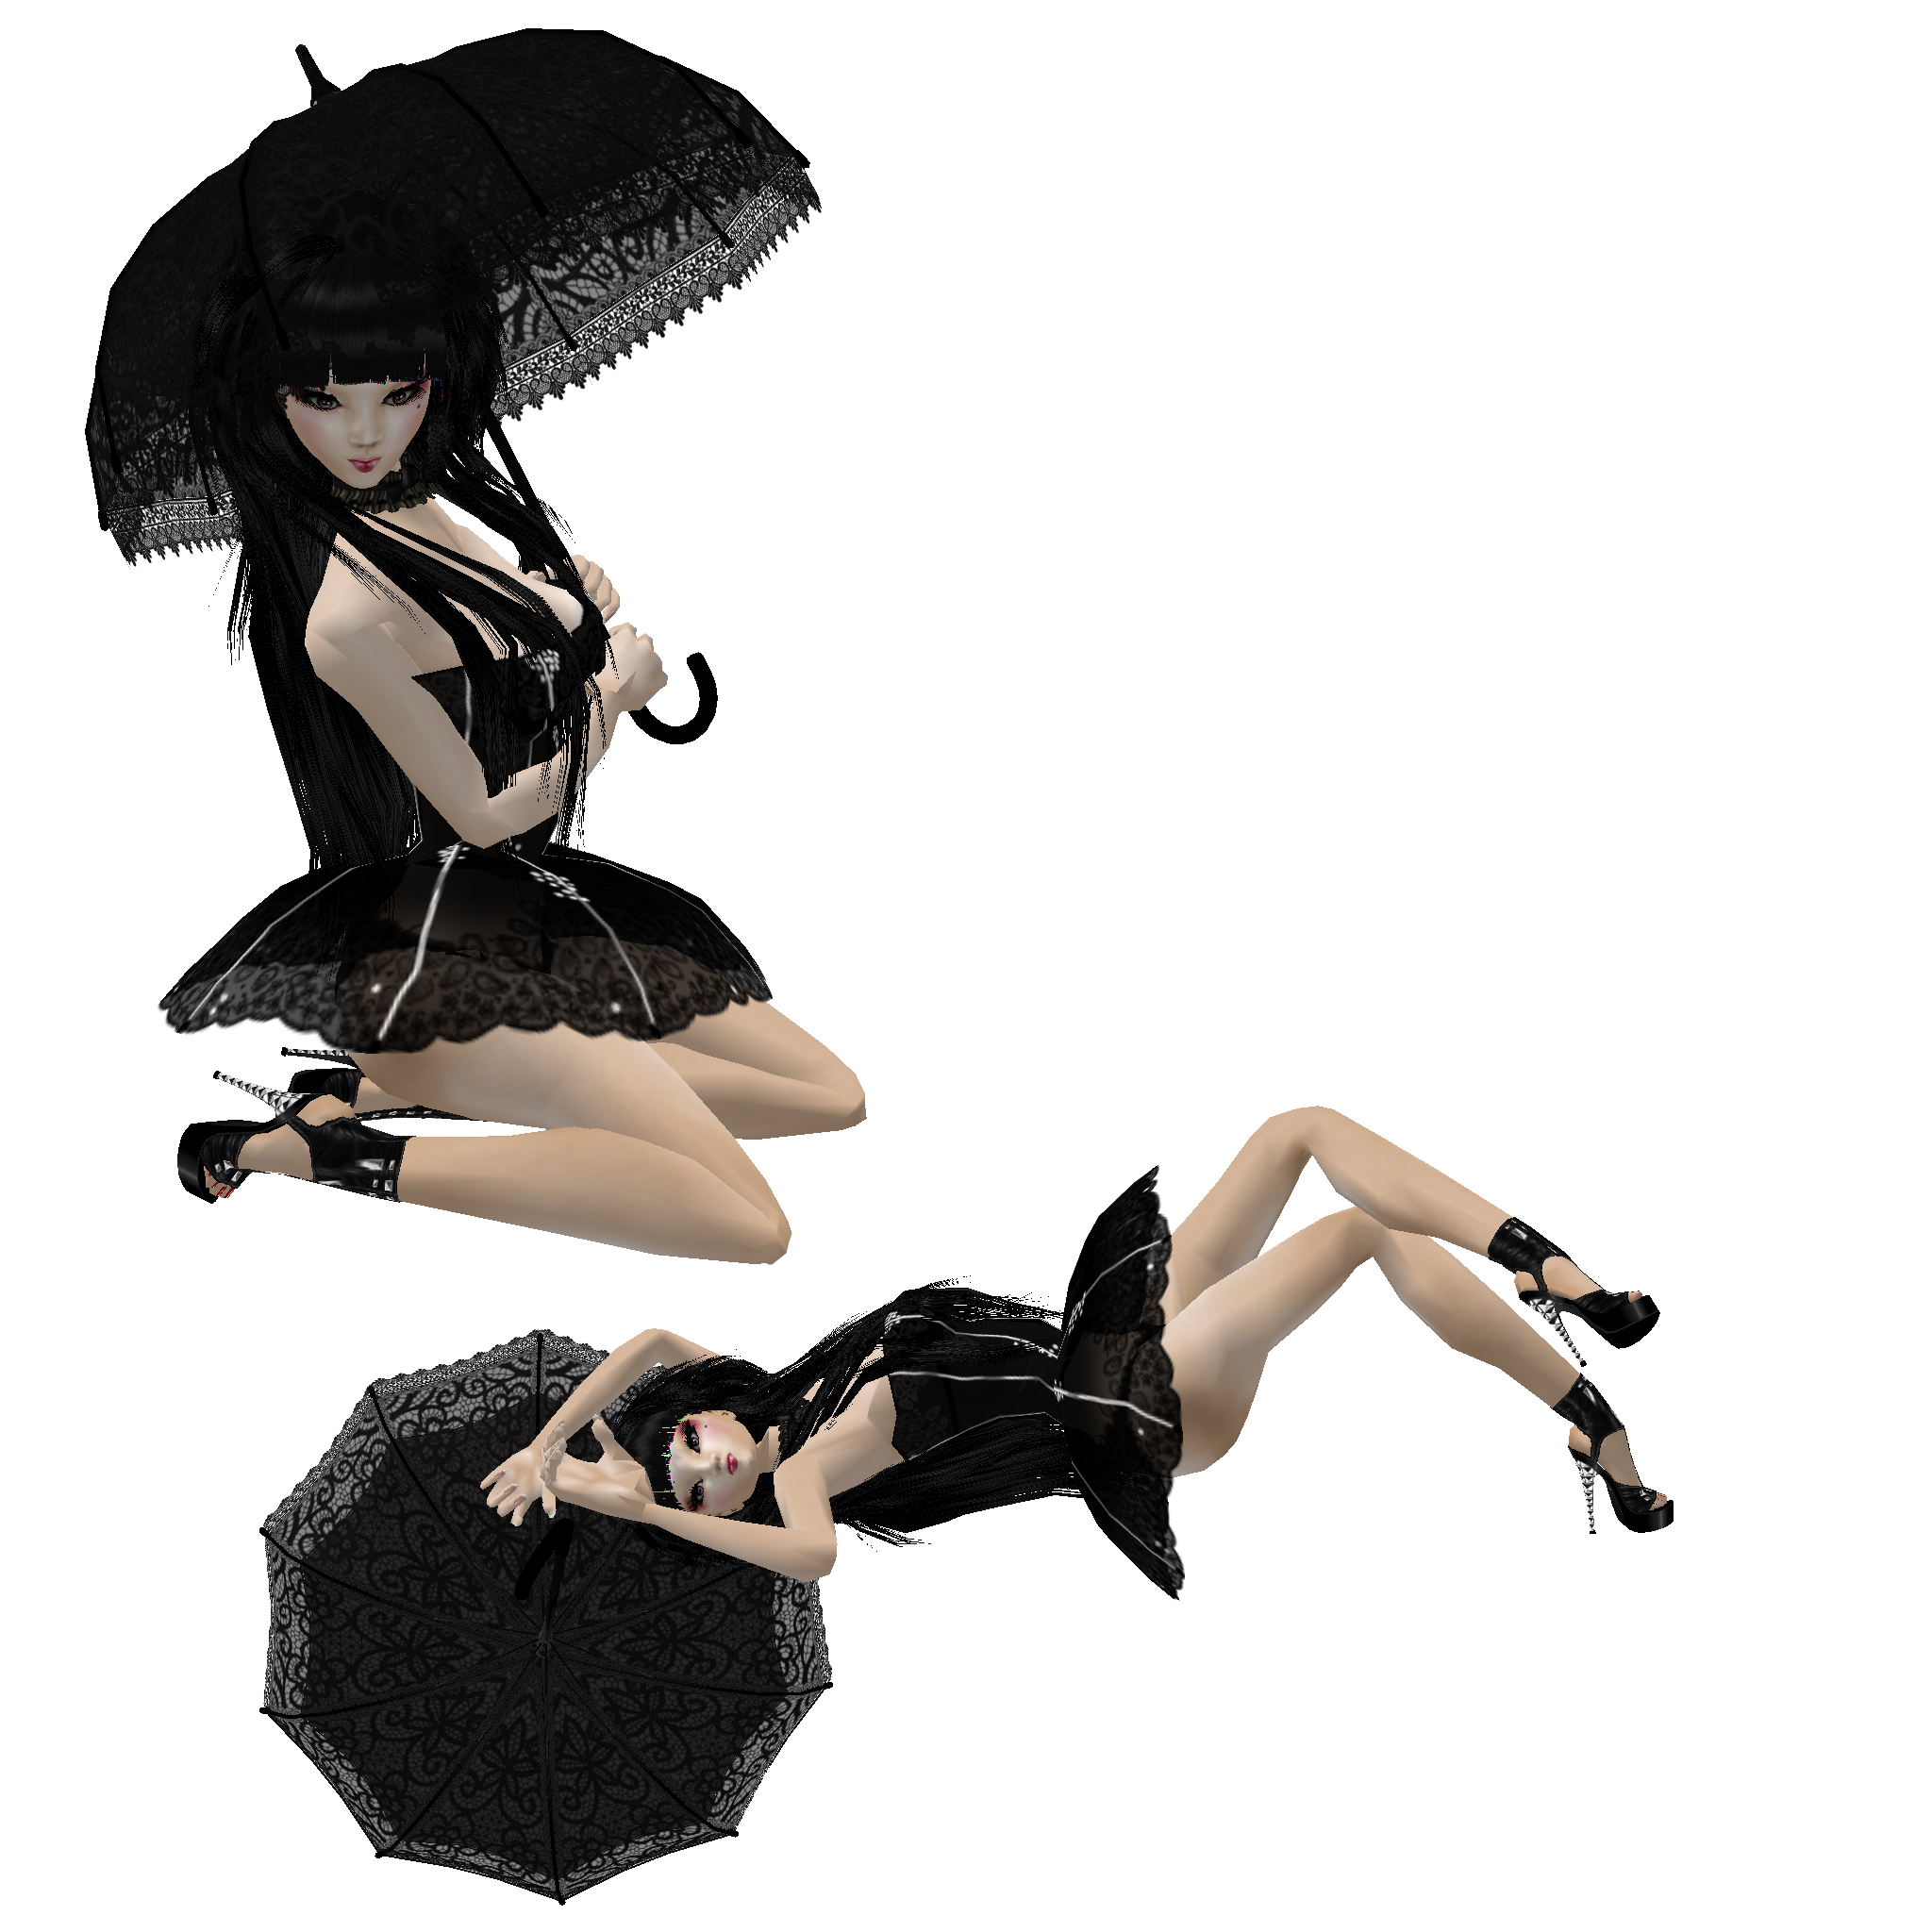 Ella Umbrella x 2 by CatonaBlade on DeviantArt